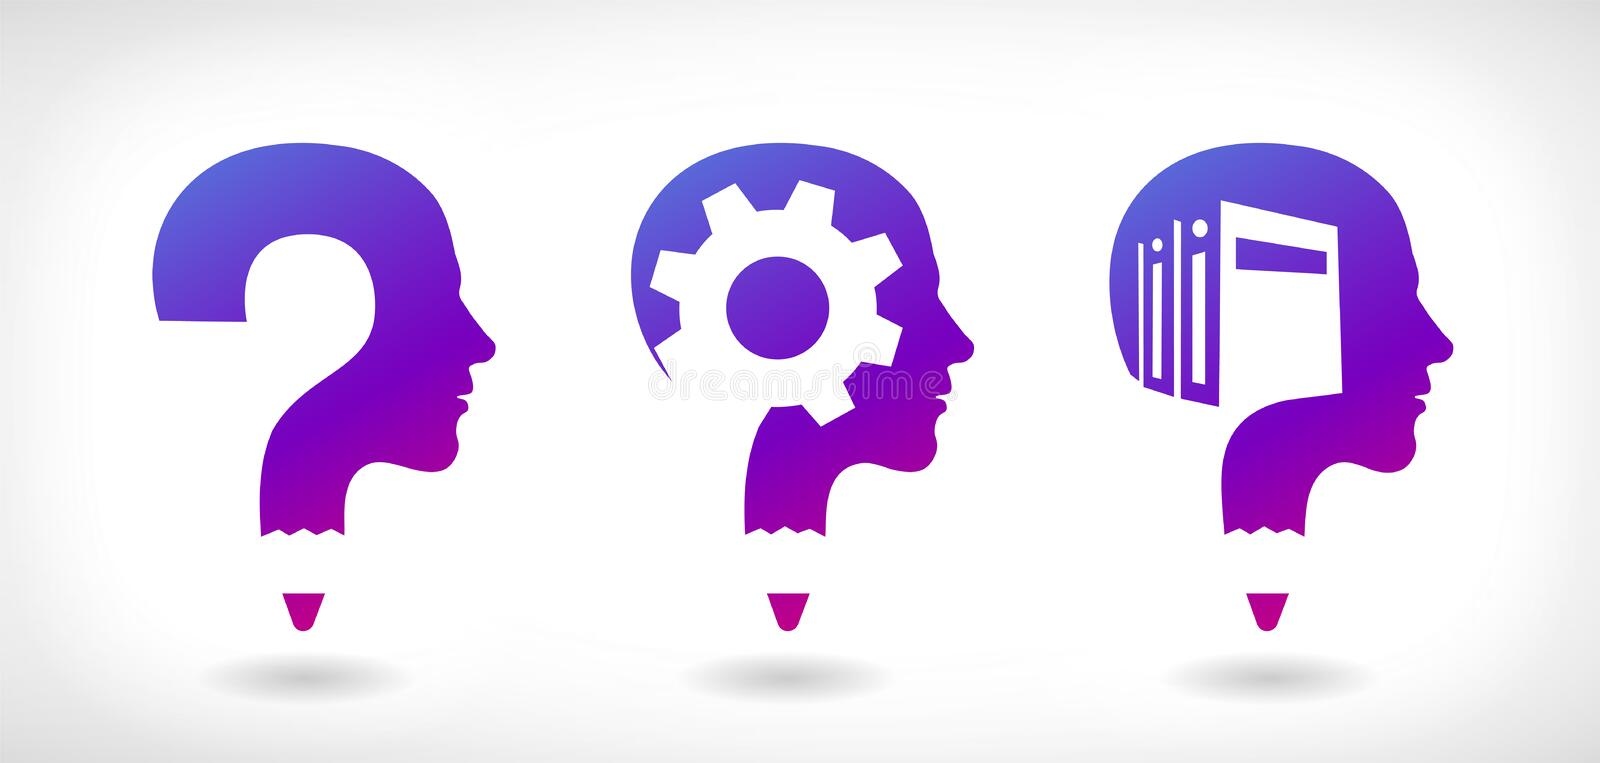 Vector logo for education, problem solving and understanding. Concept on white background vector illustration